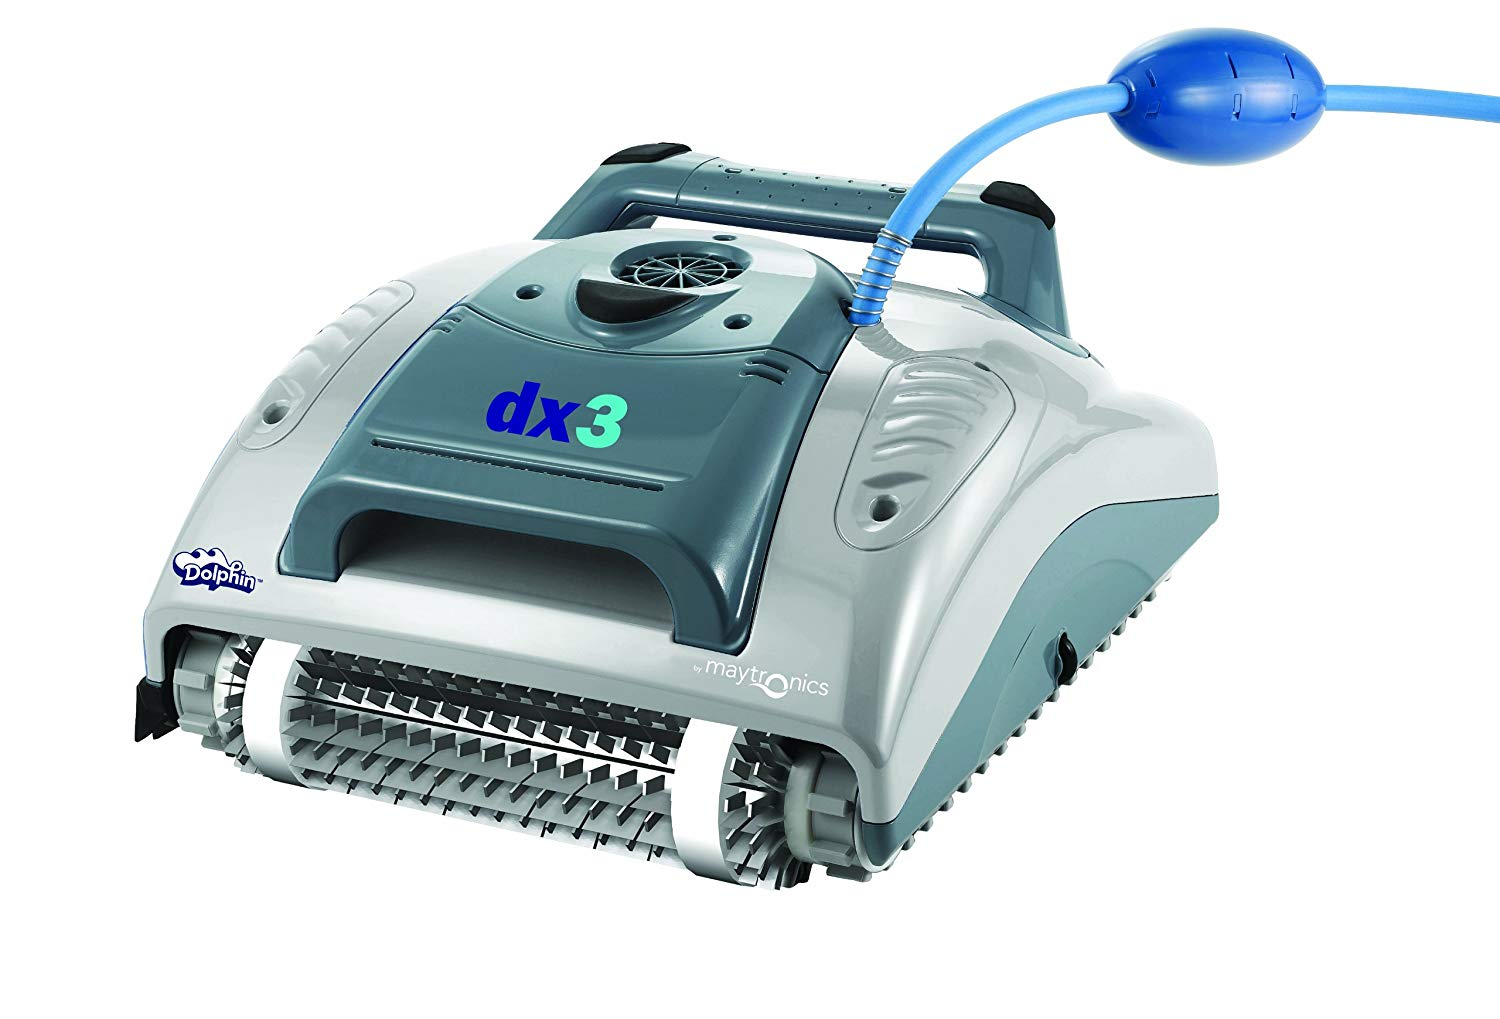 Dolphin 99996333-DX3 DX3 Robotic Pool Cleaner